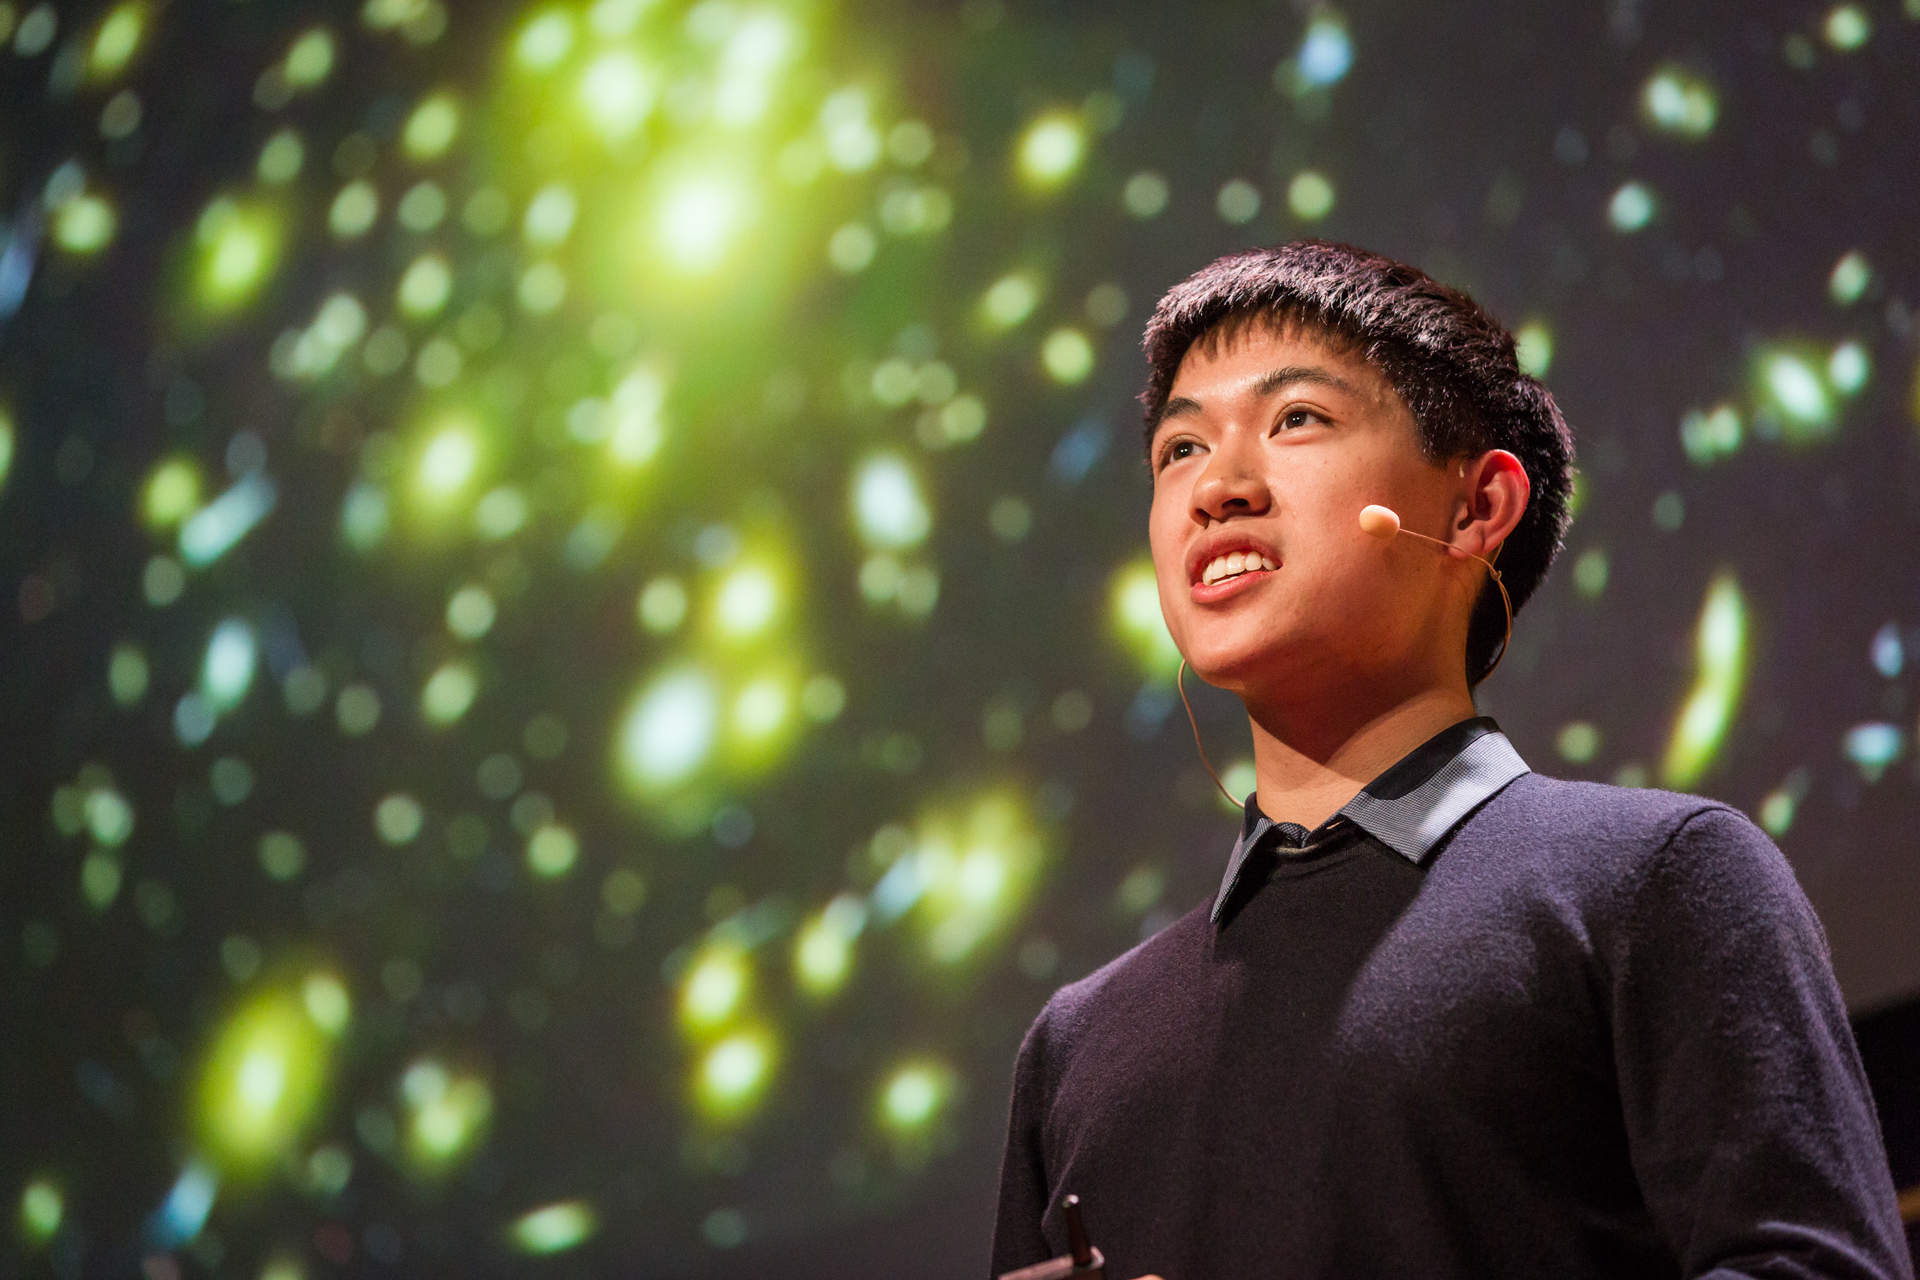 """Henry Lin, who won this year's Intel Science Fair for his models of galaxy clusters, delivers the message: """"Science is a rough draft. There is so much that baffles us and challenges our understanding."""" Photo: Ryan Lash"""